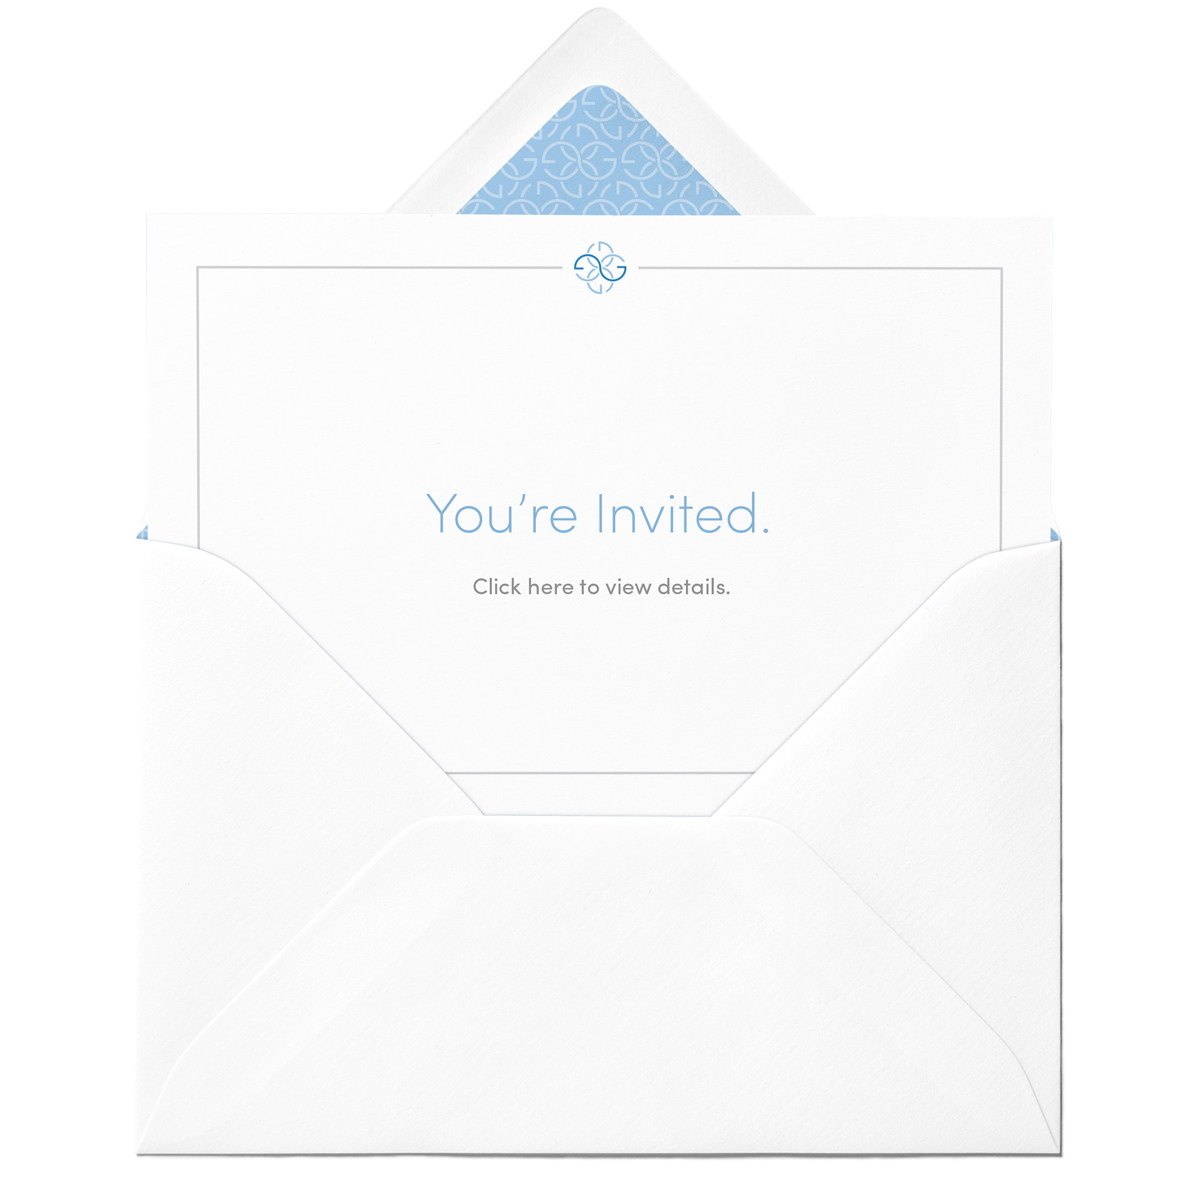 JOG Invitation Envelope